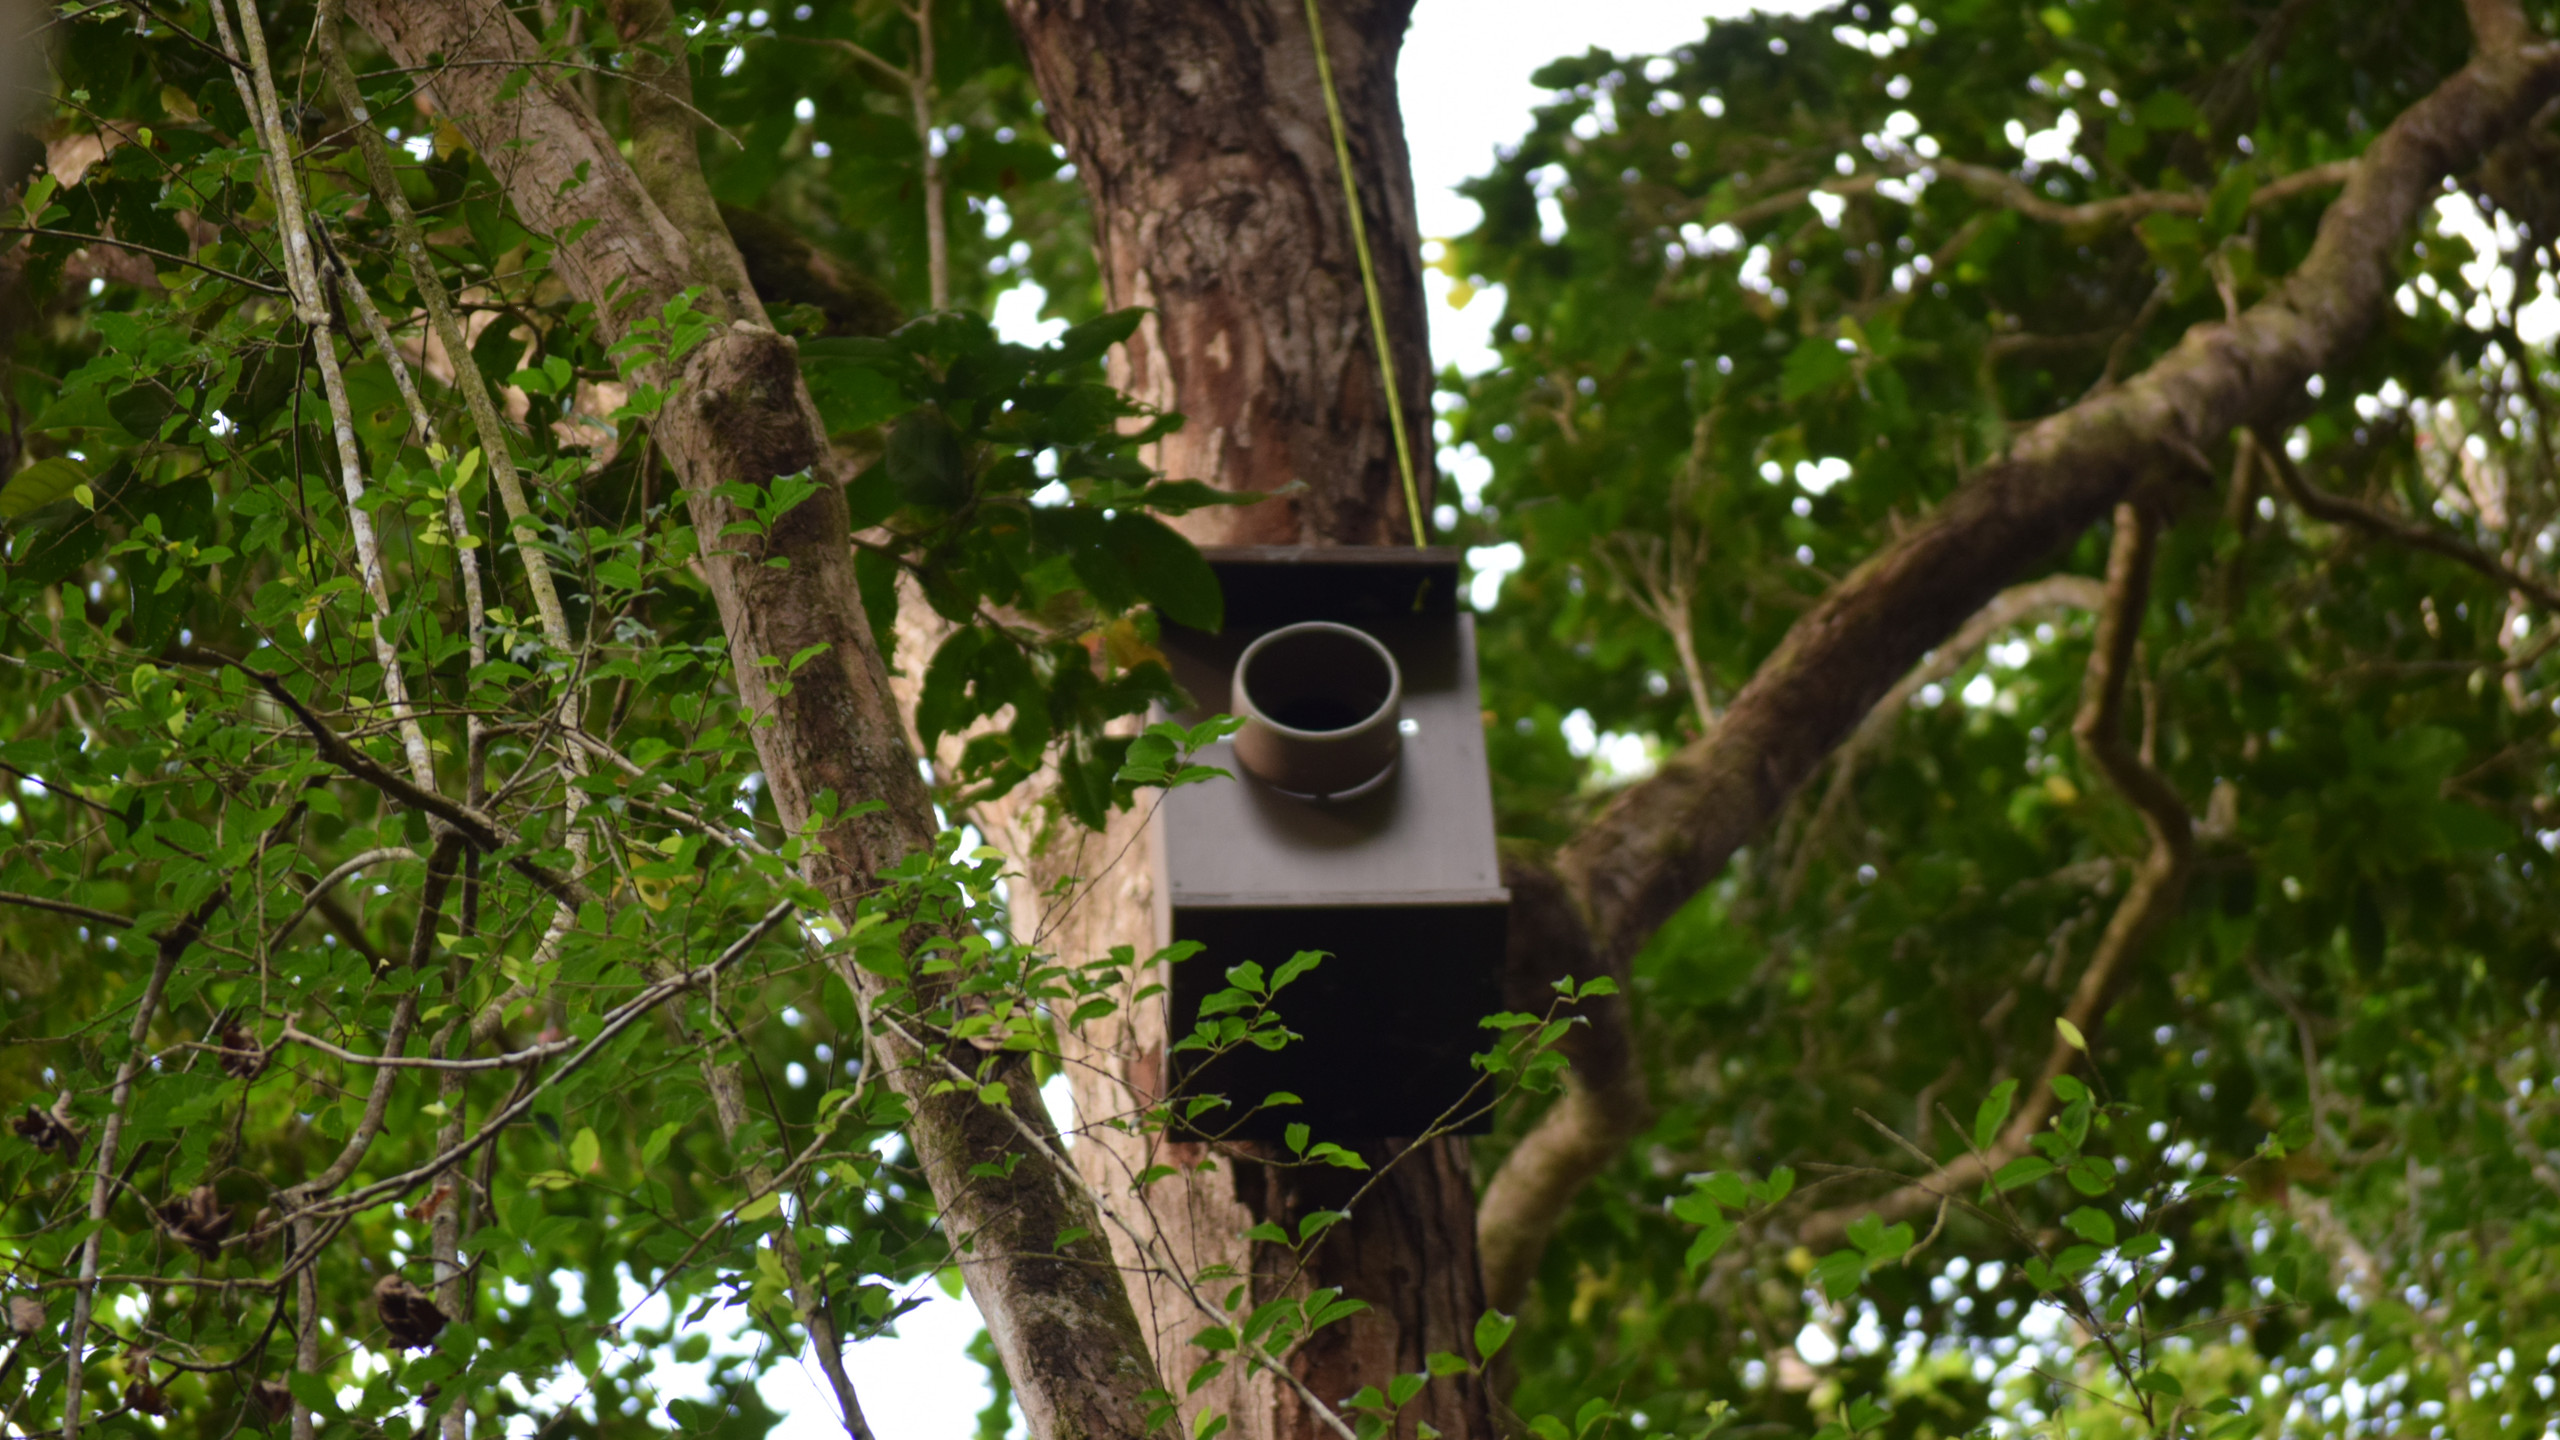 Installed nest box